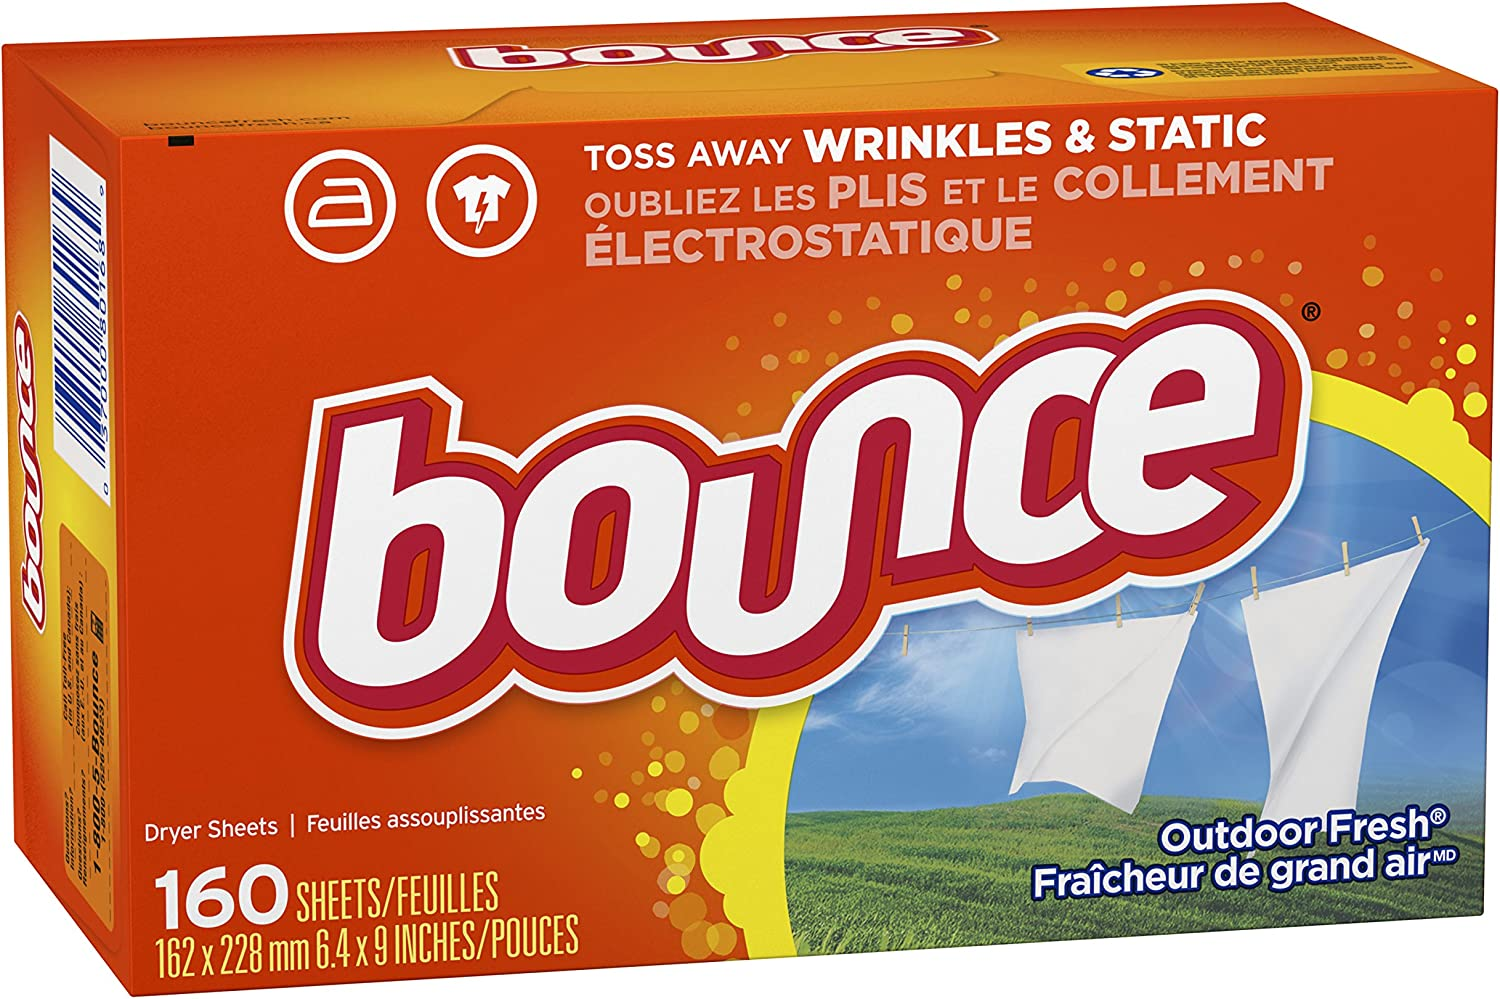 Bounce Renewing Wrinkle/Static Removing Fabric Softener Dryer Sheets: Outdoor Fresh - 1 Pack (160 Sheets)